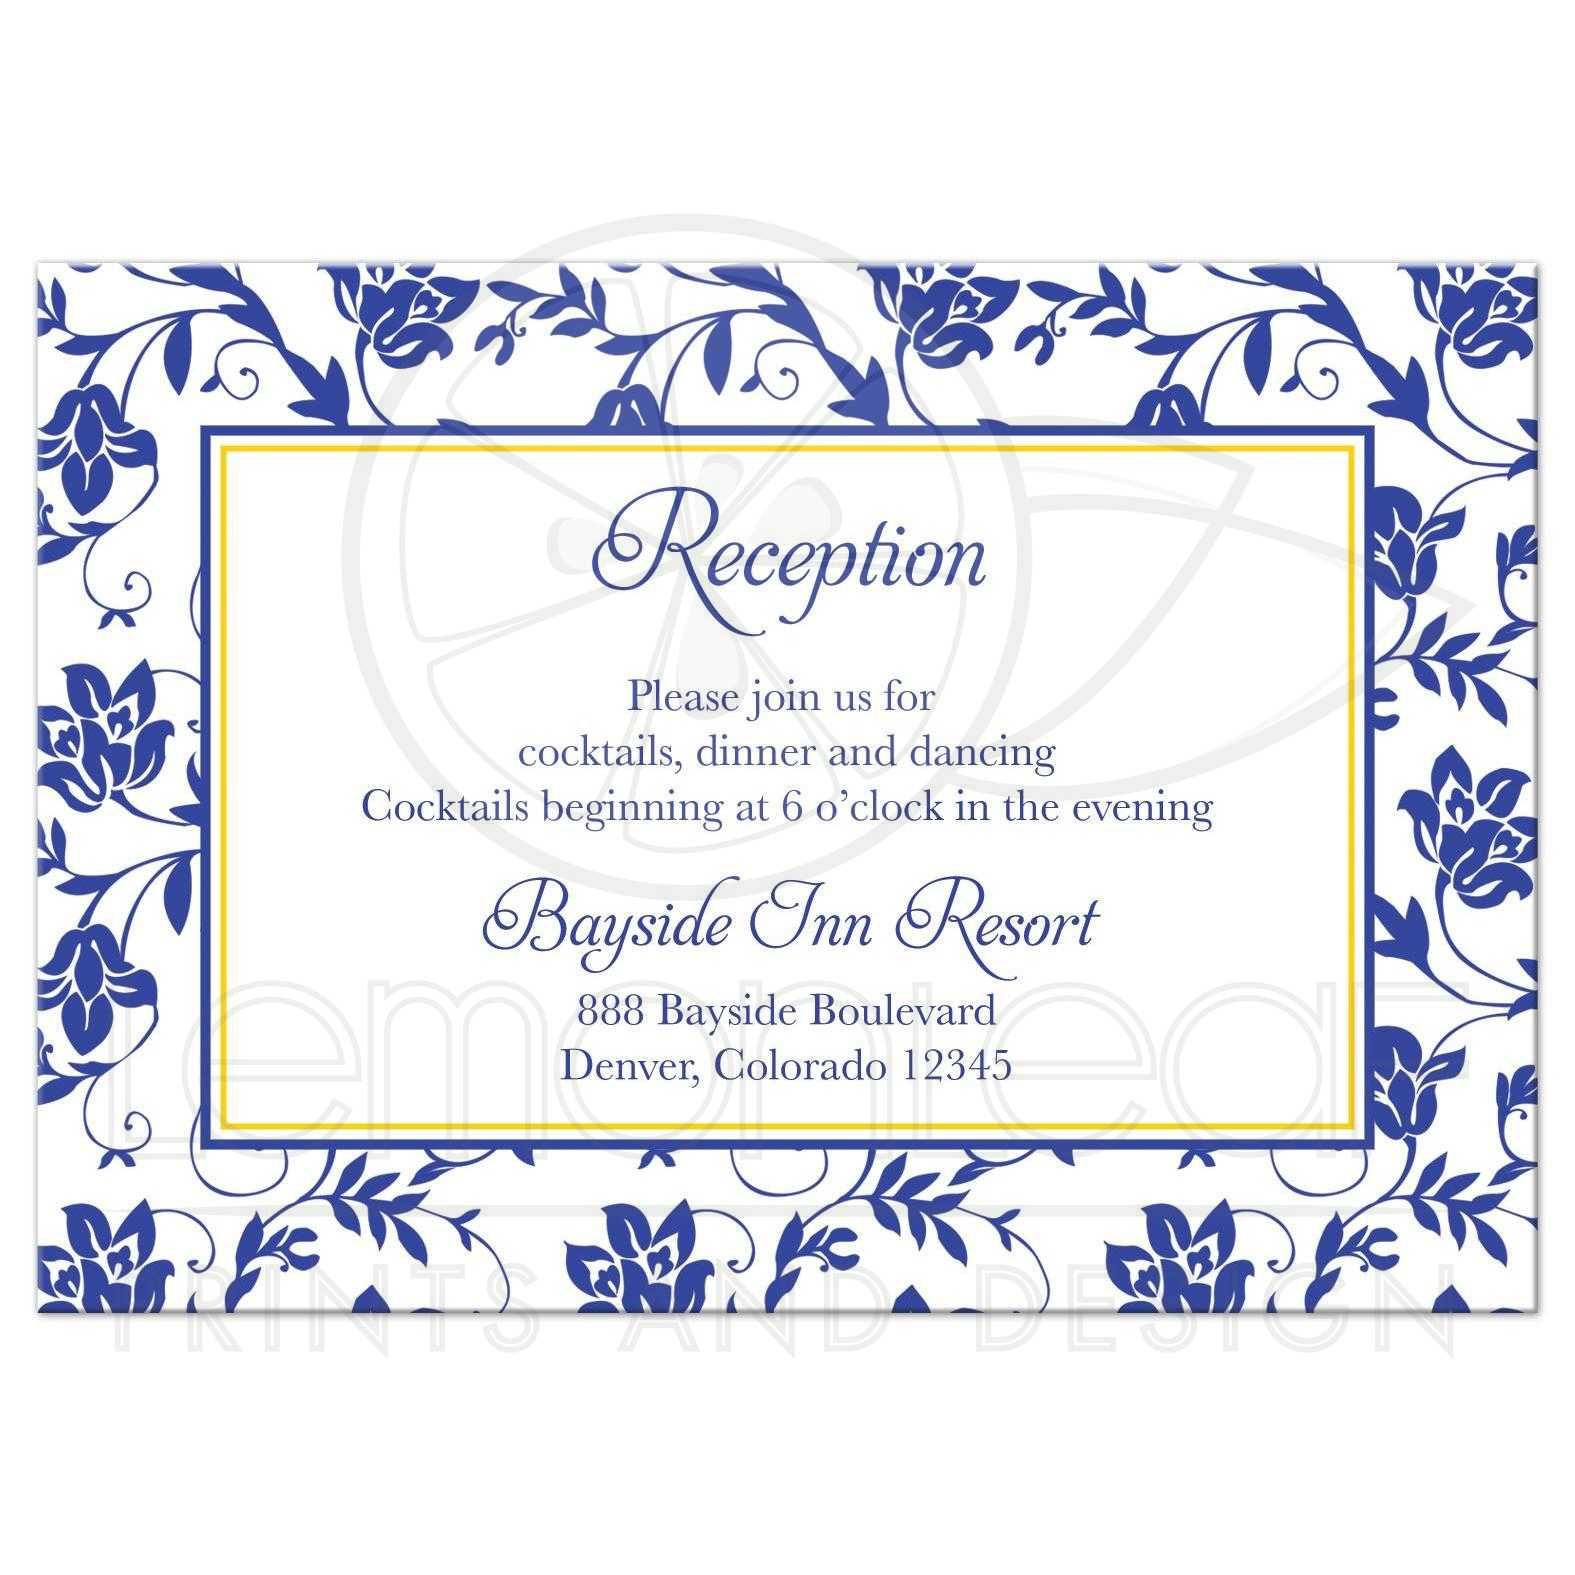 Wedding Invitations For Outdoor Wedding for awesome invitations design